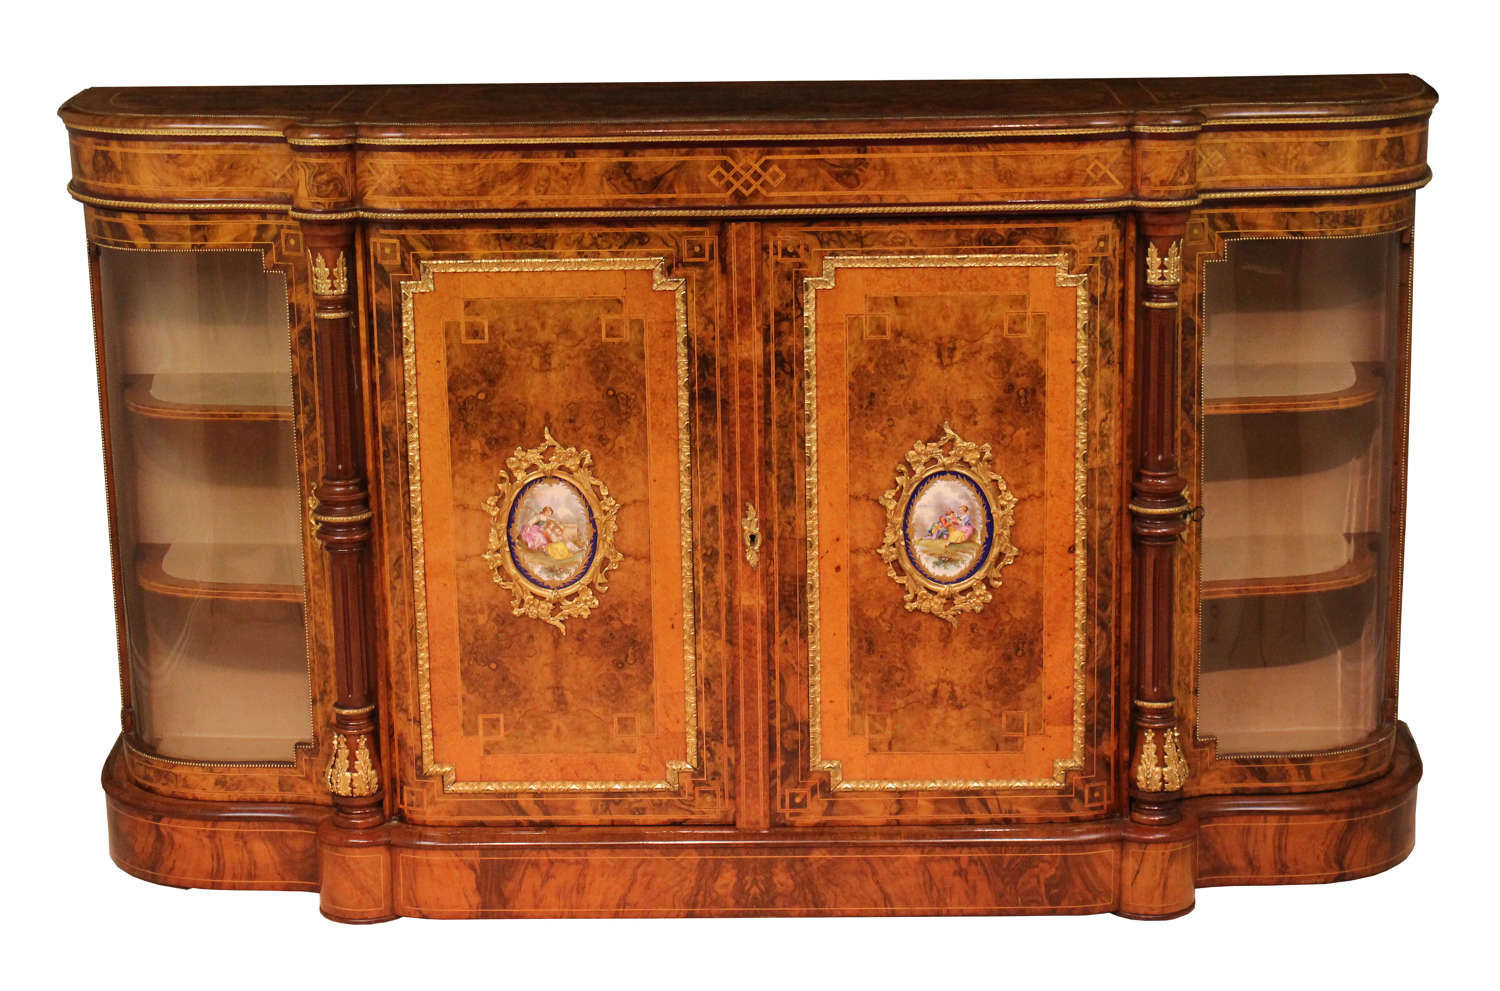 A Victorian Burr-Walnut Inlaid and Ormolu Credenza